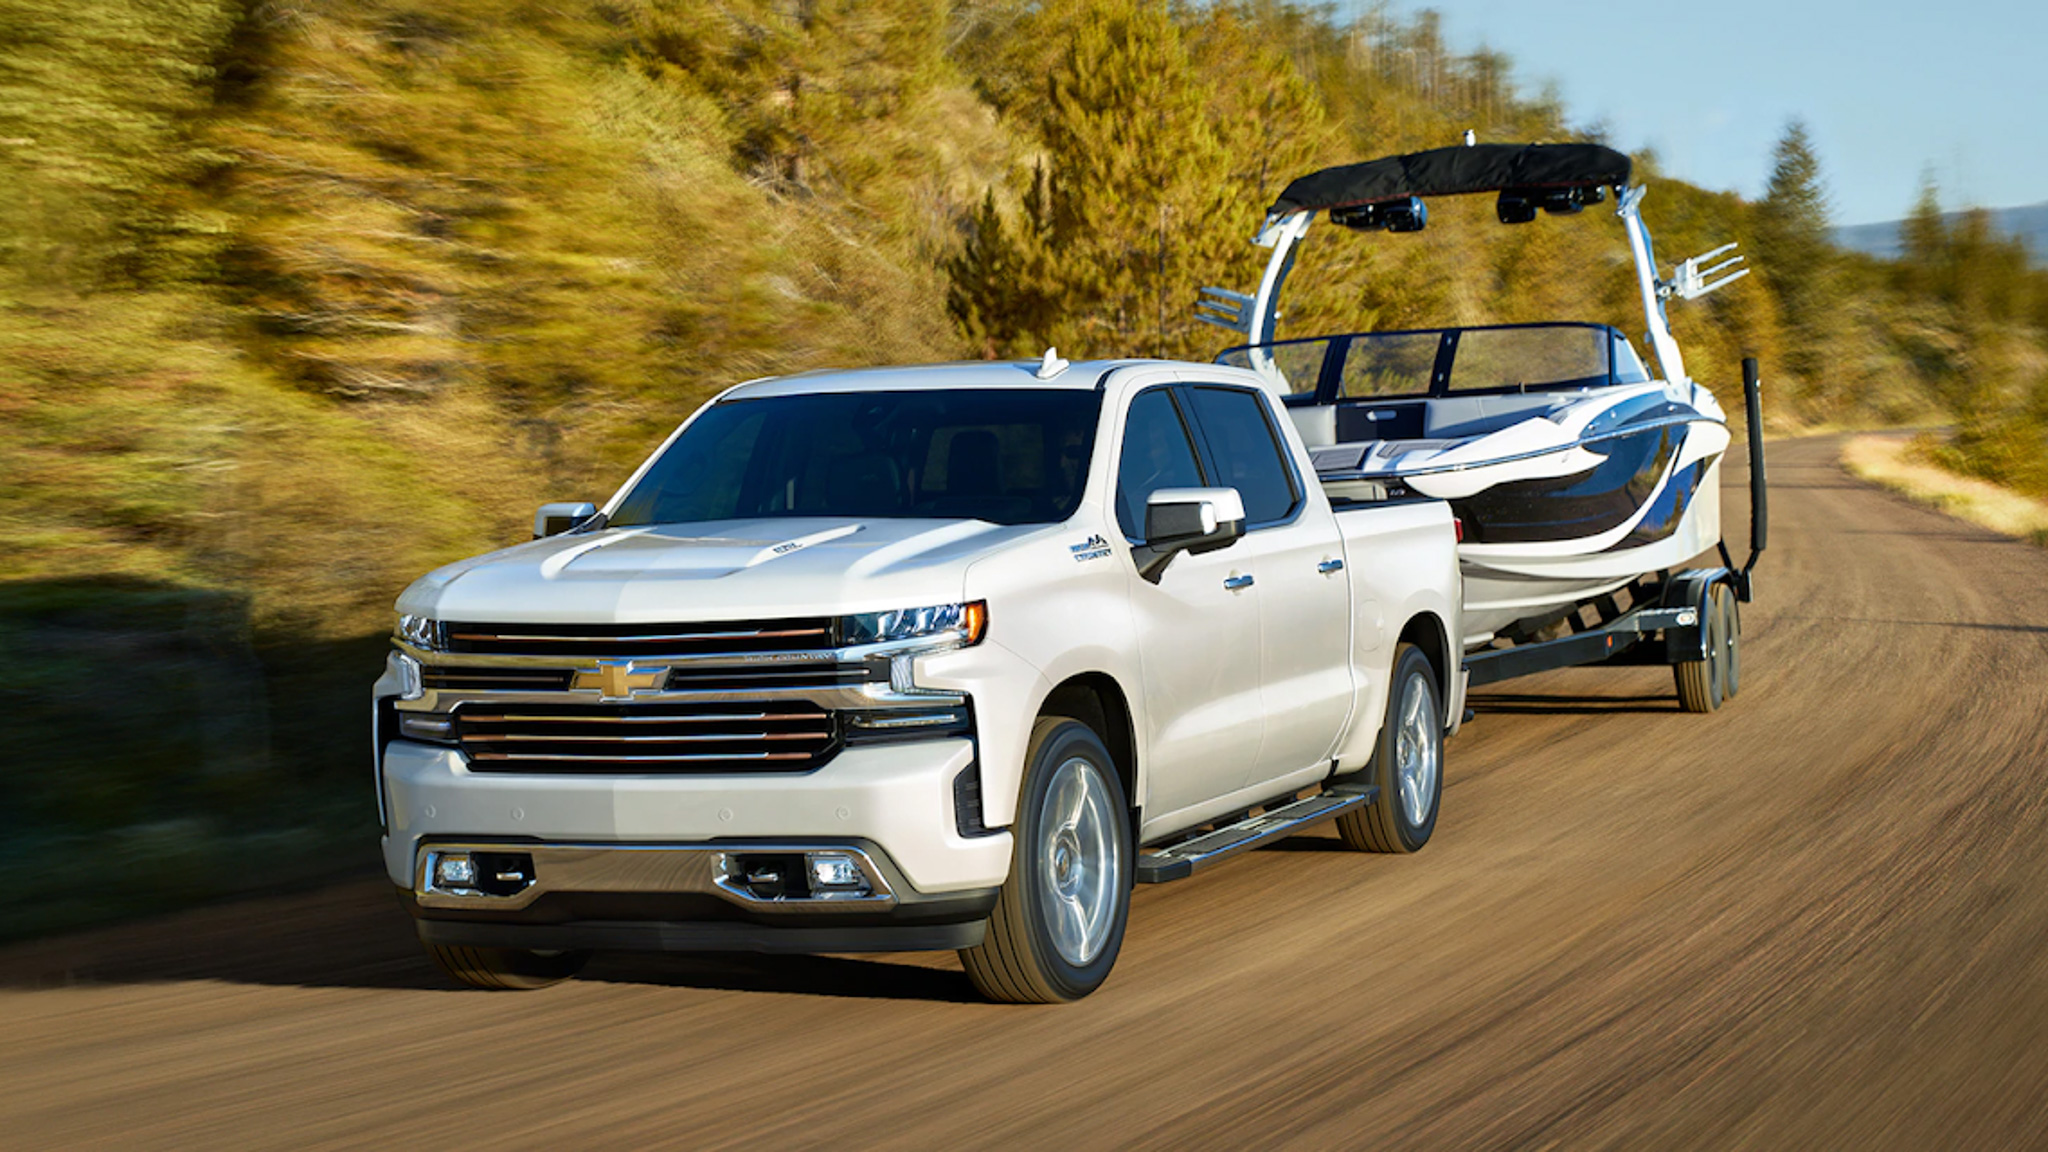 2021 Chevrolet Silverado 1500 Trim Levels: Lots and Lots of Variations